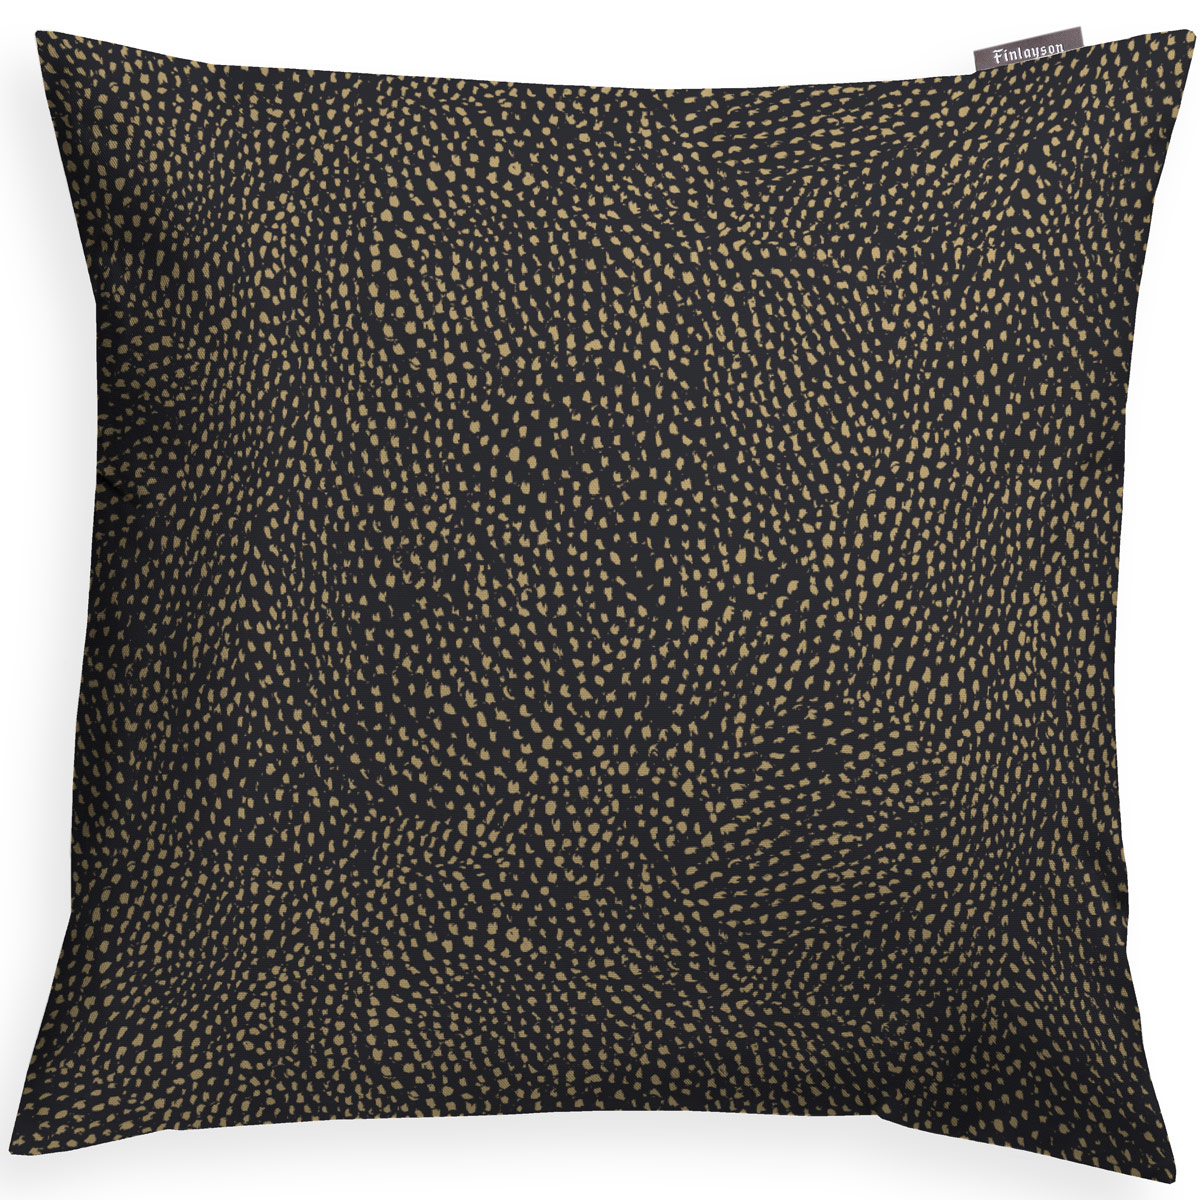 gold throw pillows that shopping living accessories decorative home room fringe decor make pillow the funkiest